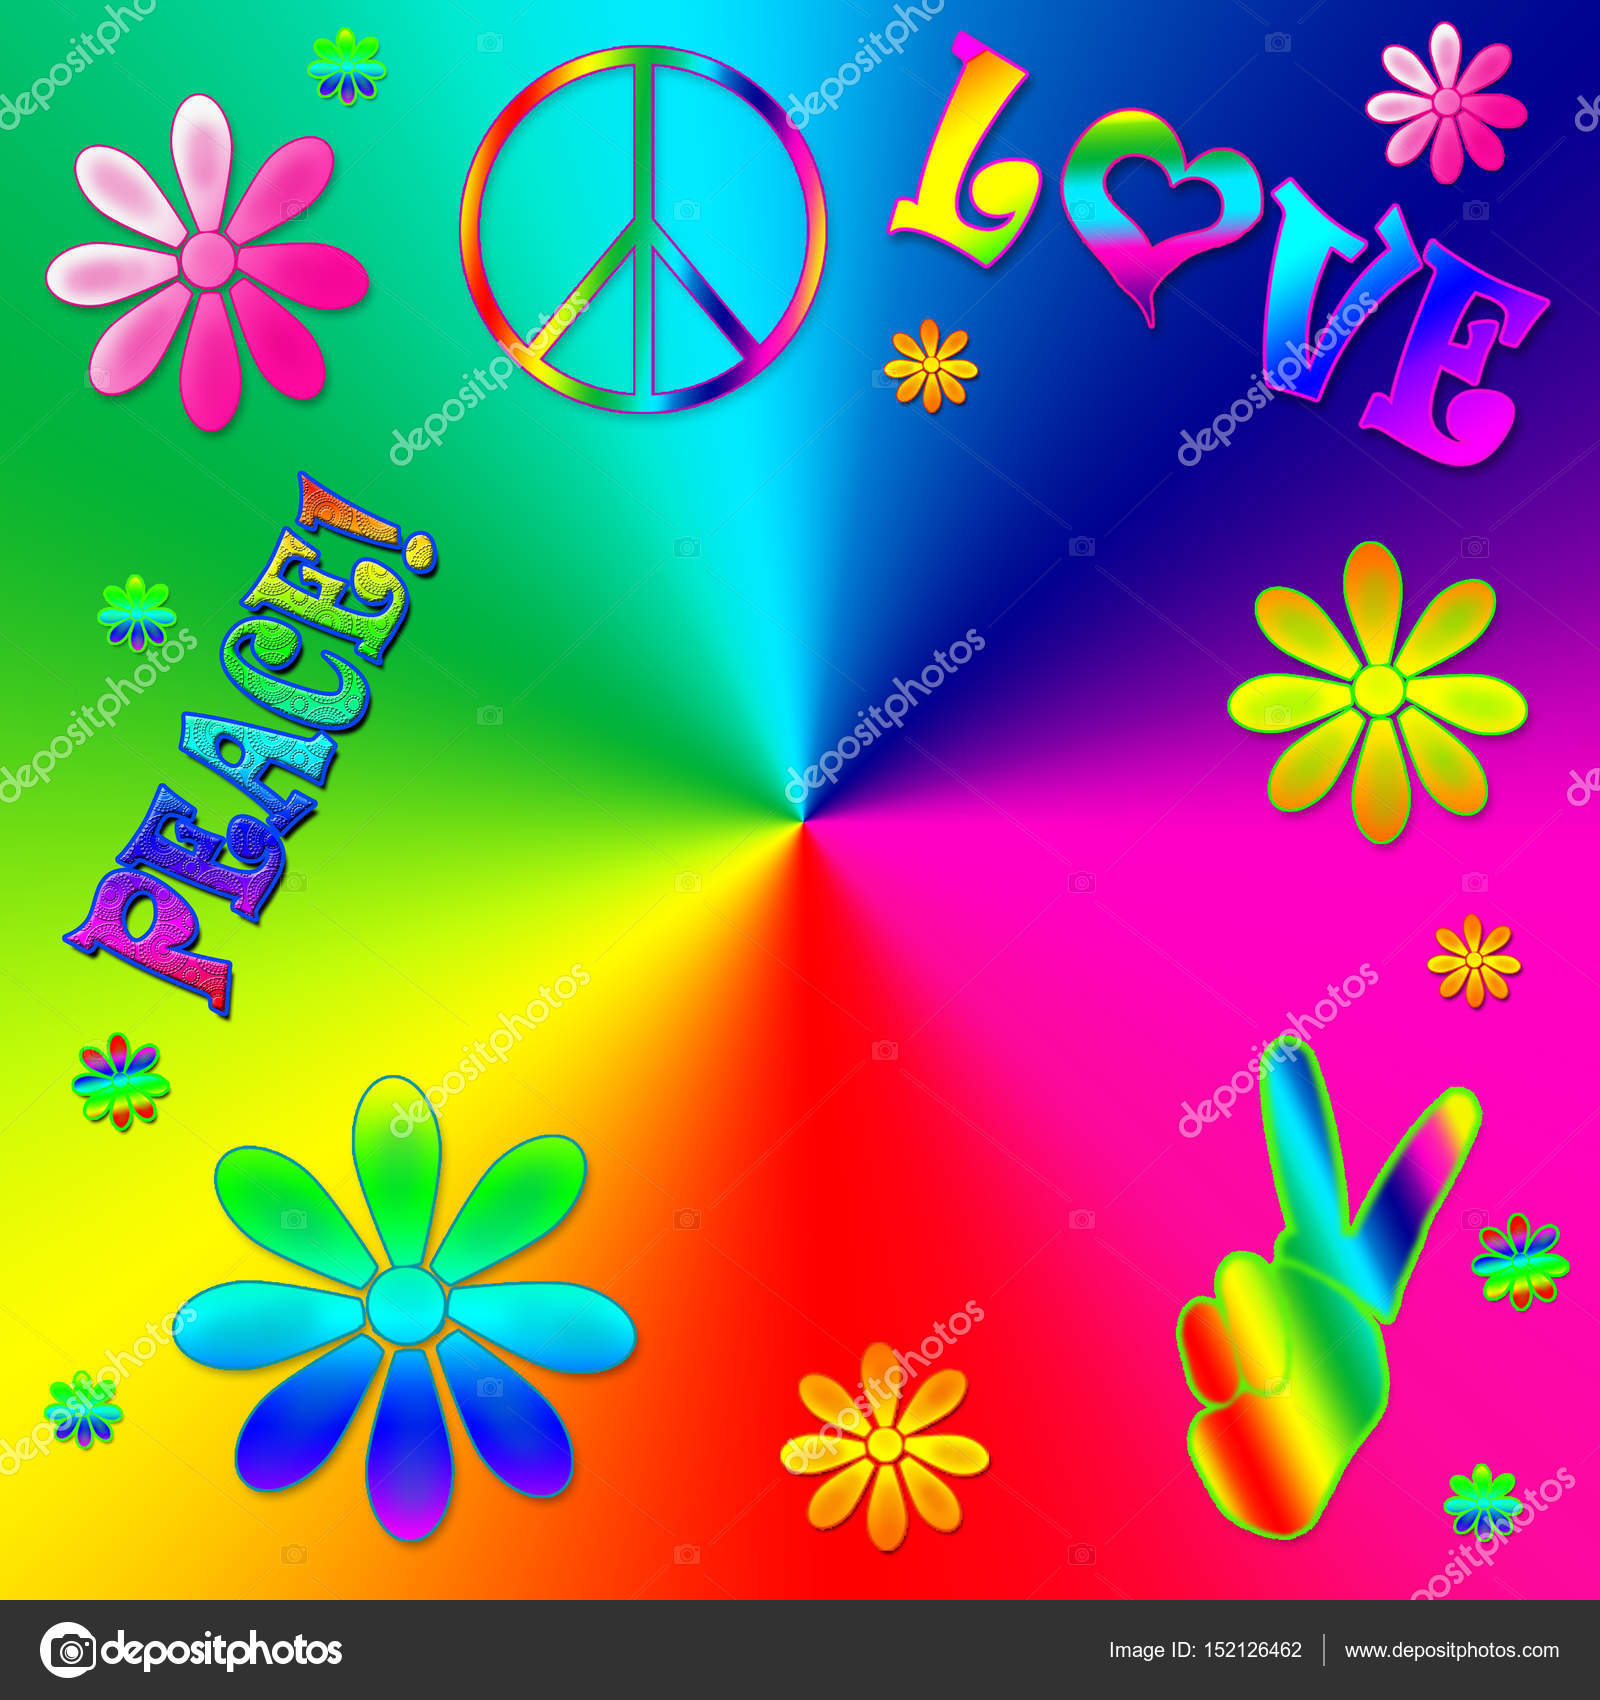 Hippie background in vivid wild colors and designs stock photo hippie background in vivid wild colors and designs stock photo voltagebd Choice Image